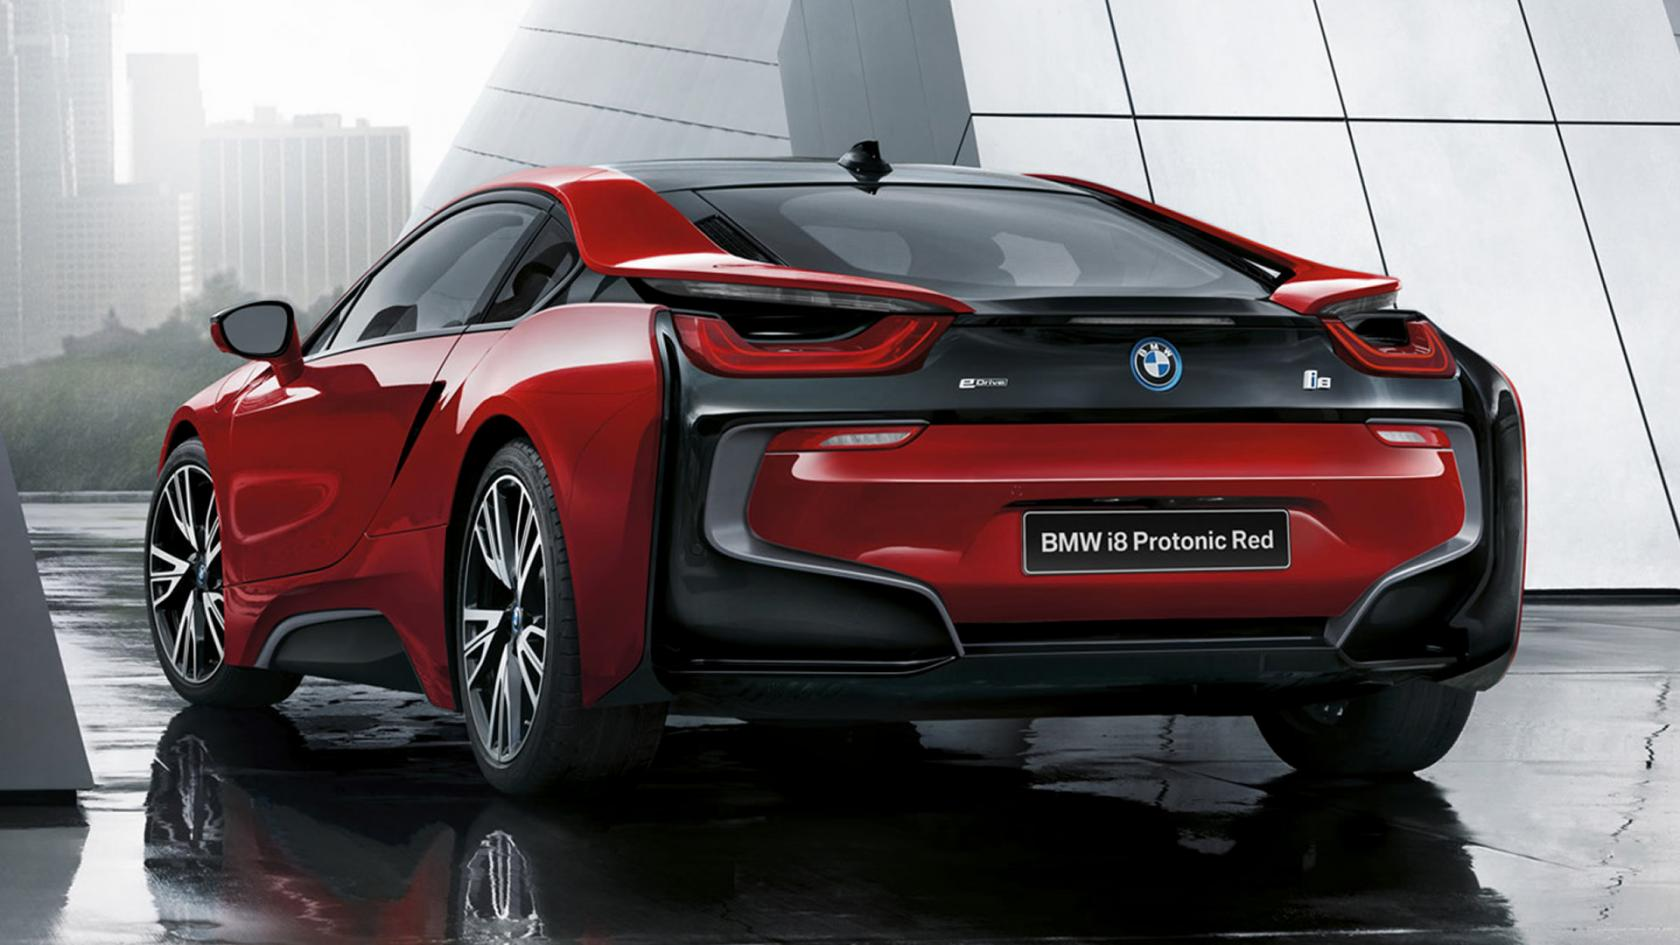 BMW-i8-Protonic-rouge.jpeg